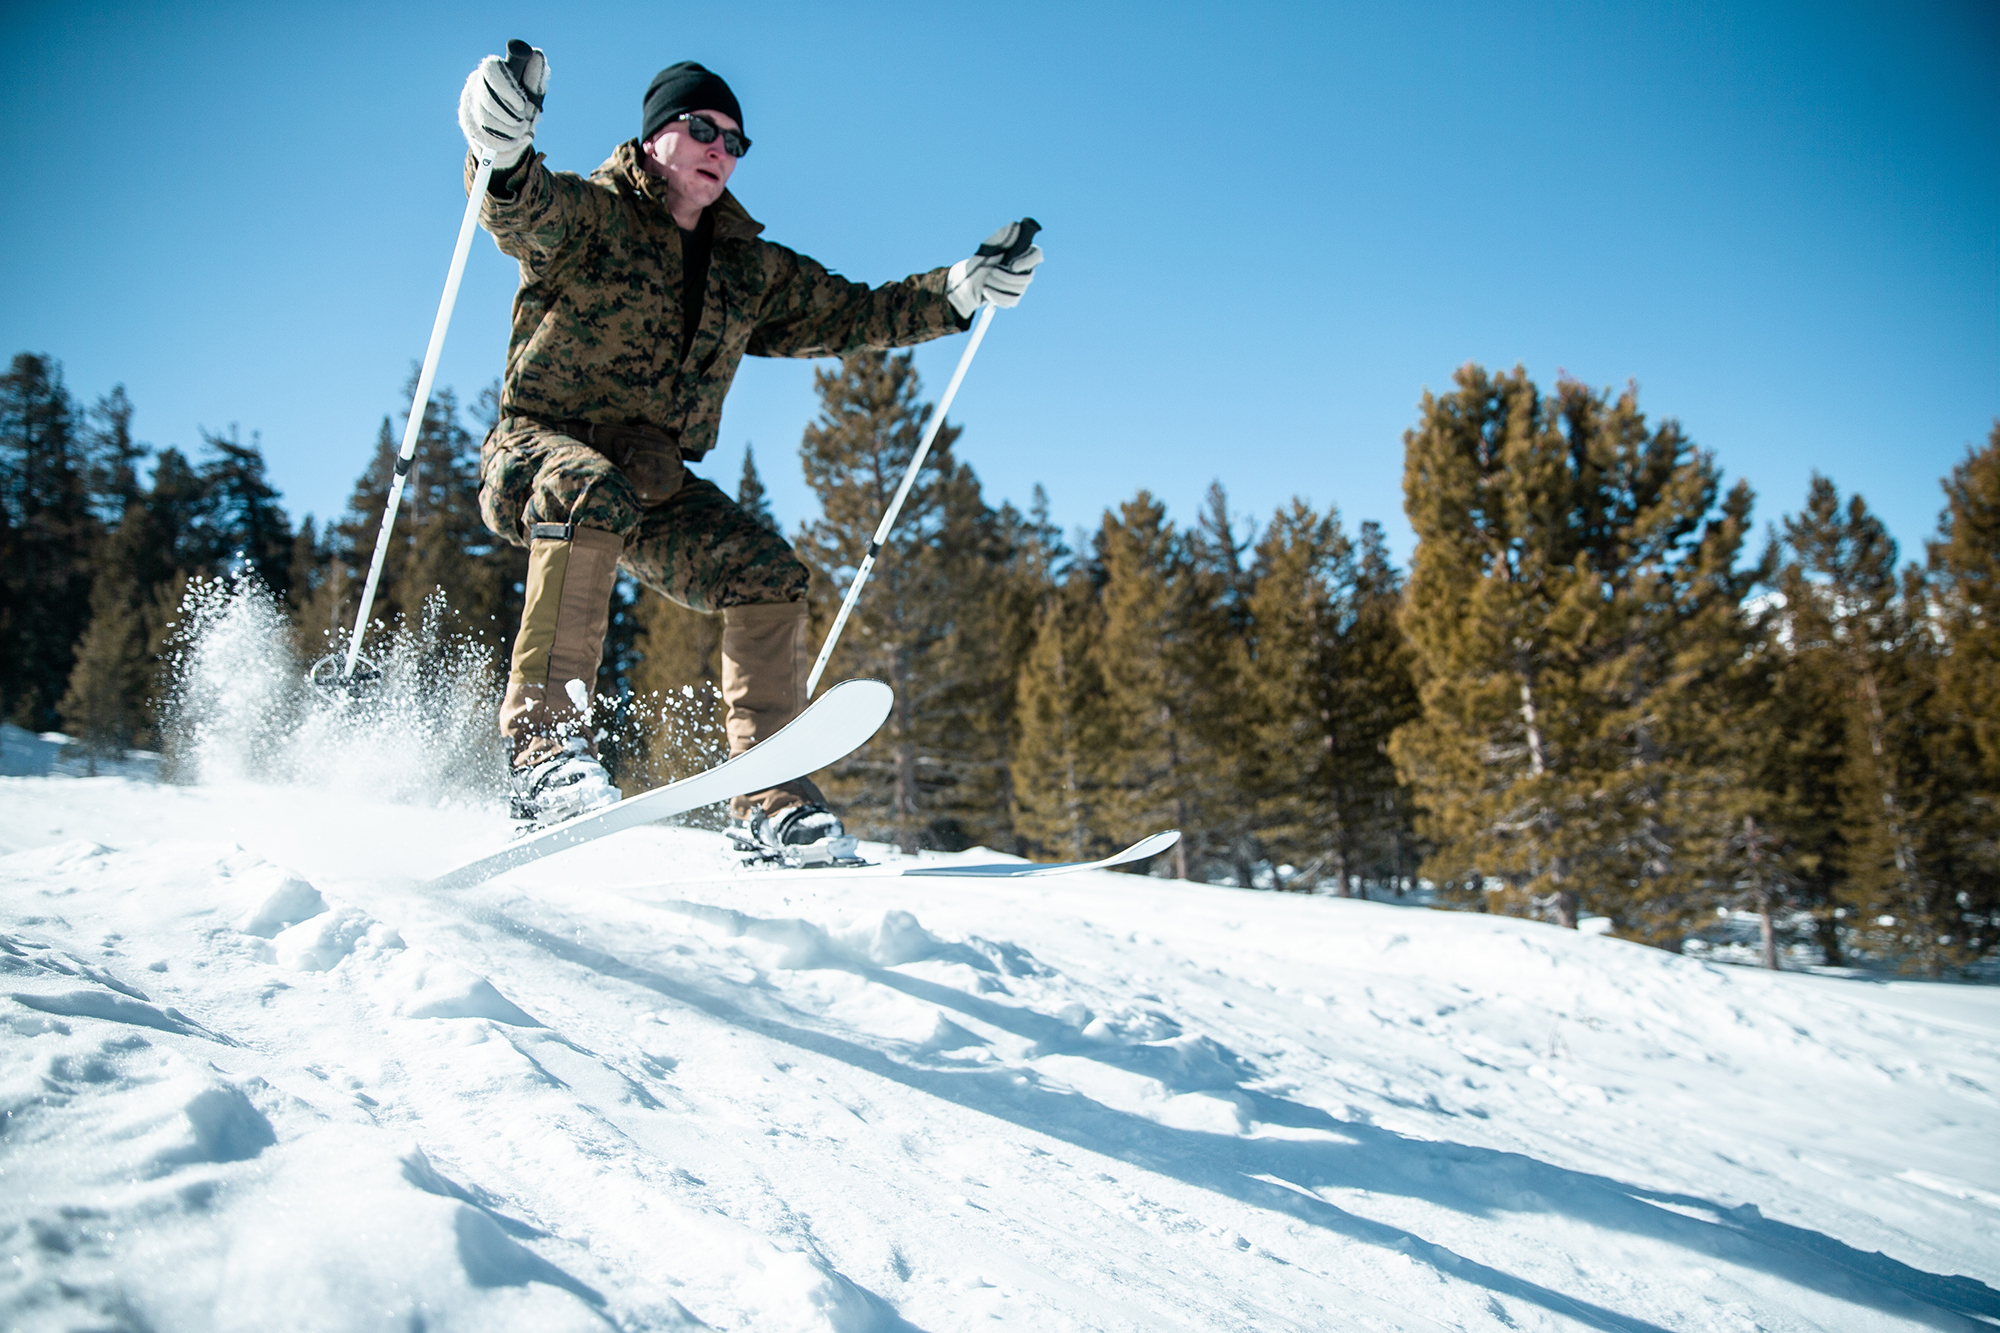 A Marine conducts a skiing-competency training event during Mountain Exercise 2-20 aboard Mountain Warfare Training Center in Bridgeport, Calif., Feb. 12, 2020. (Lance Cpl. Patrick King/Marine Corps)